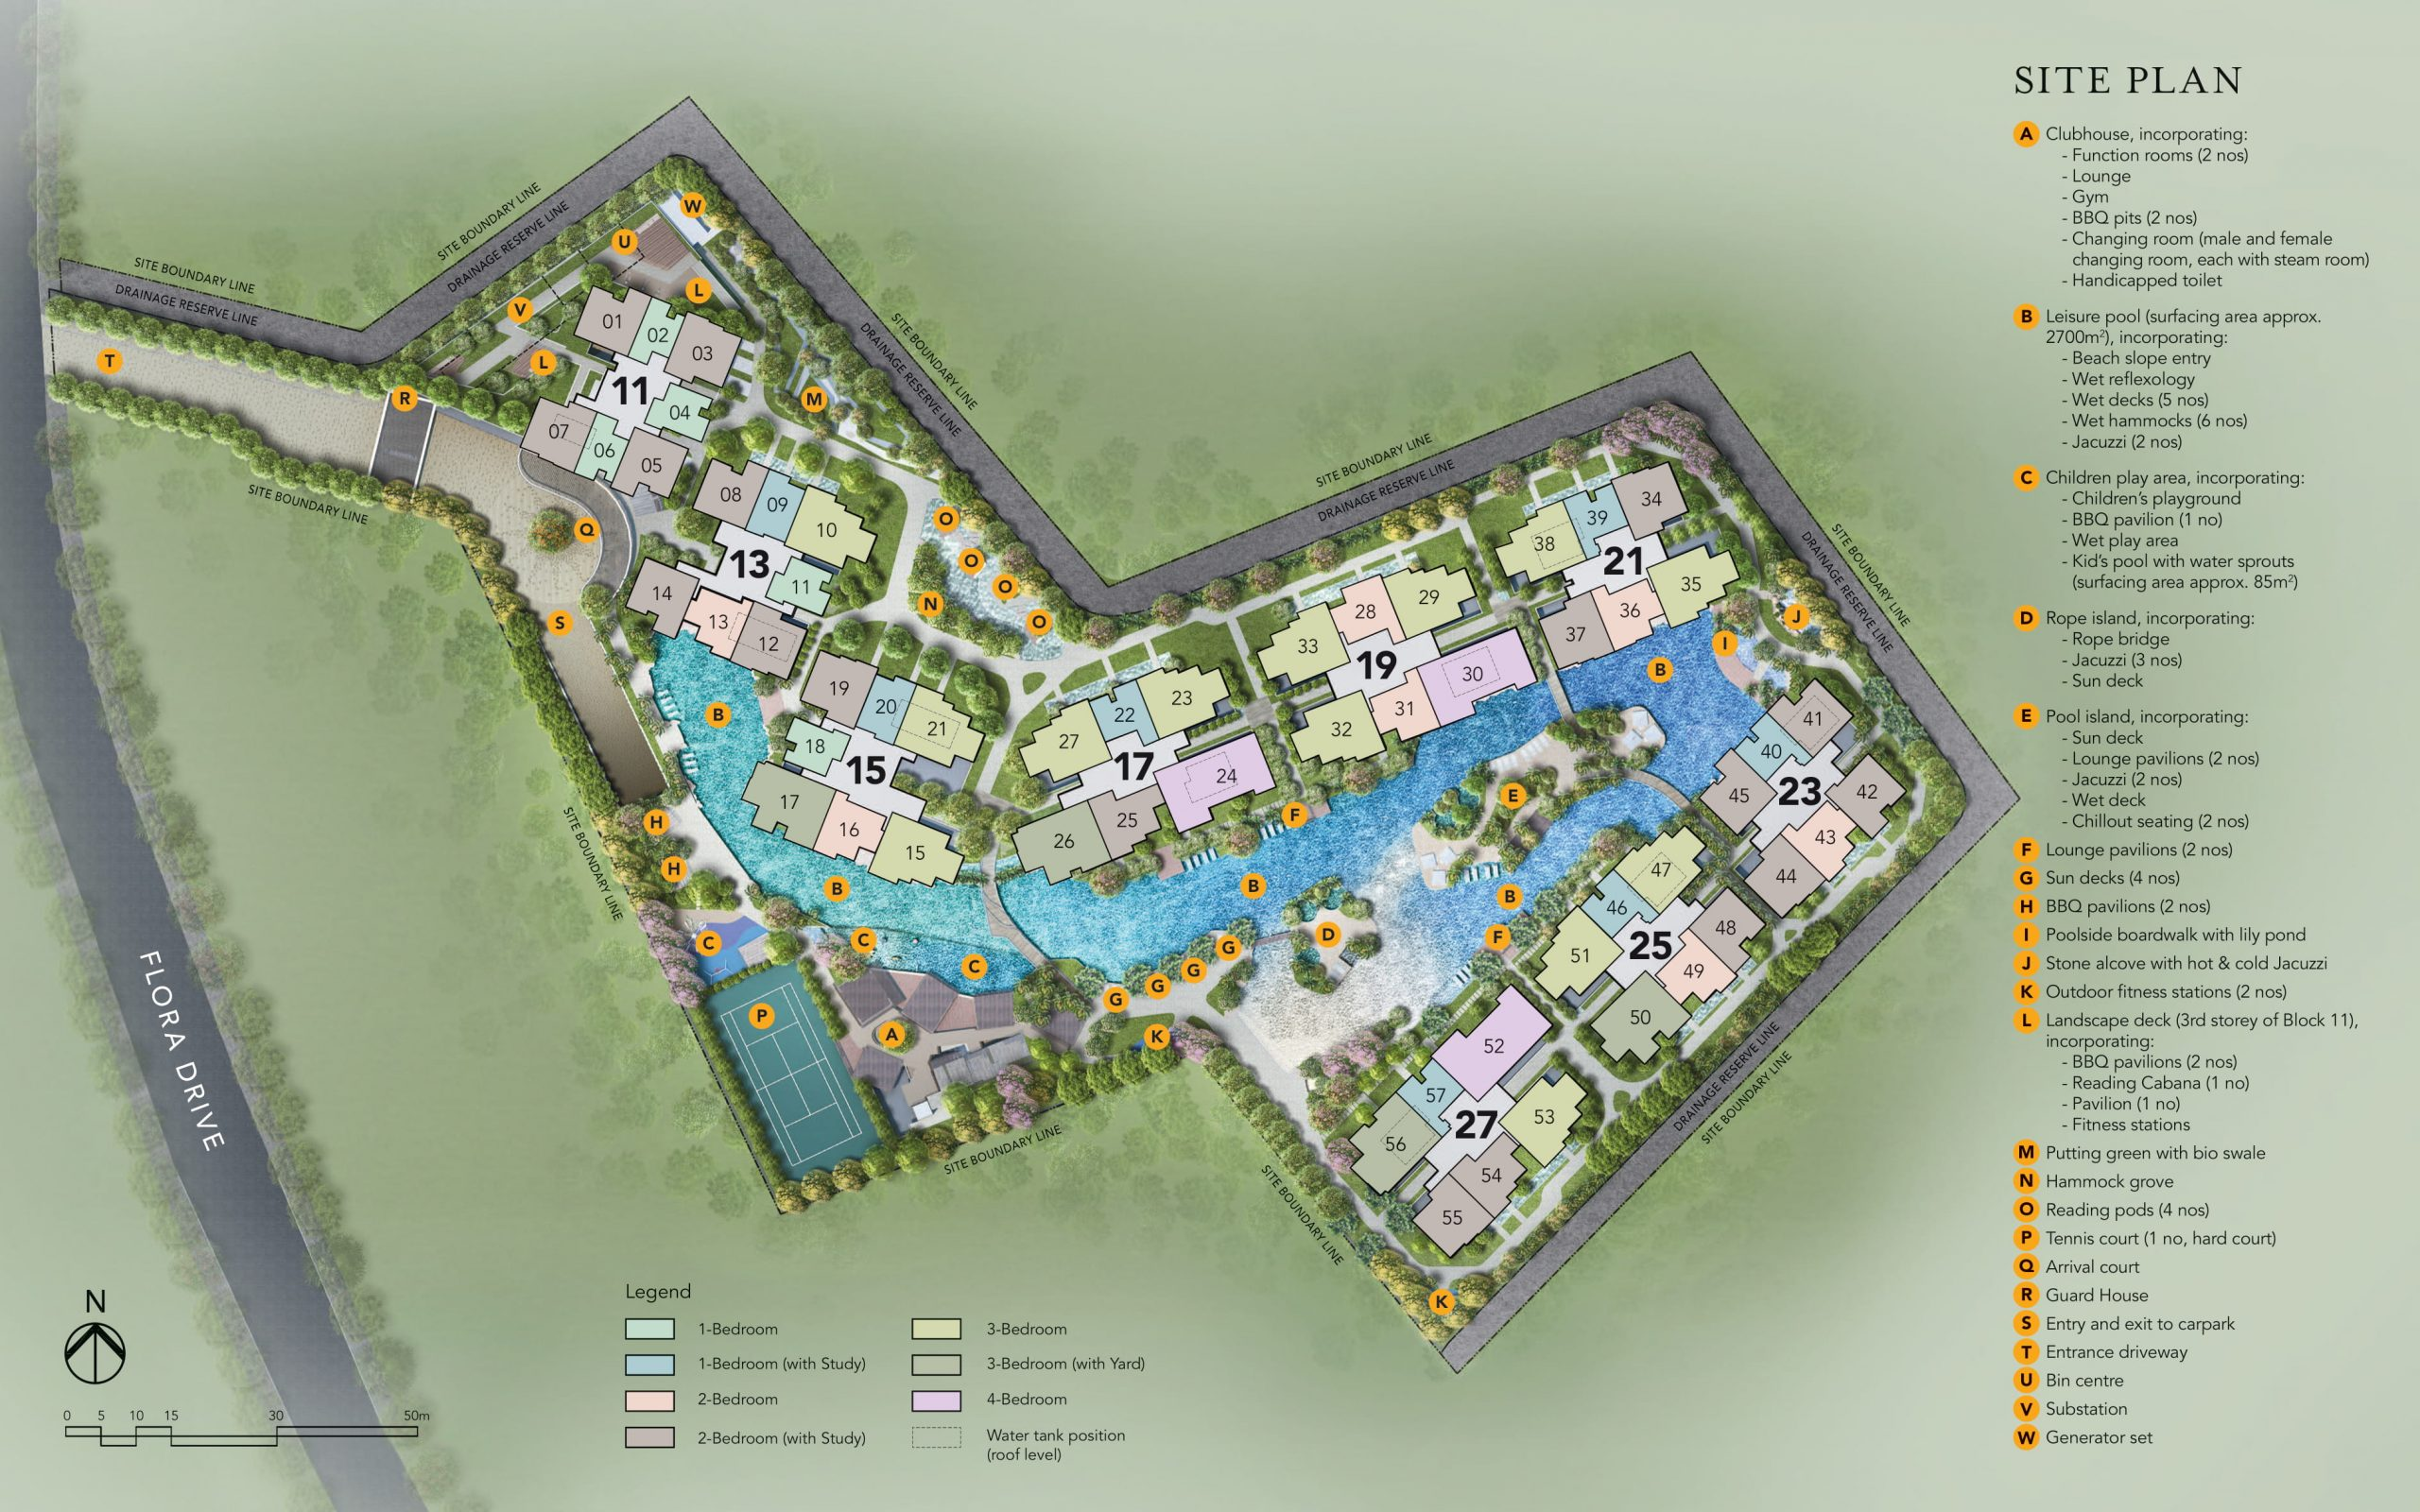 The Jovell's site plan and facilities